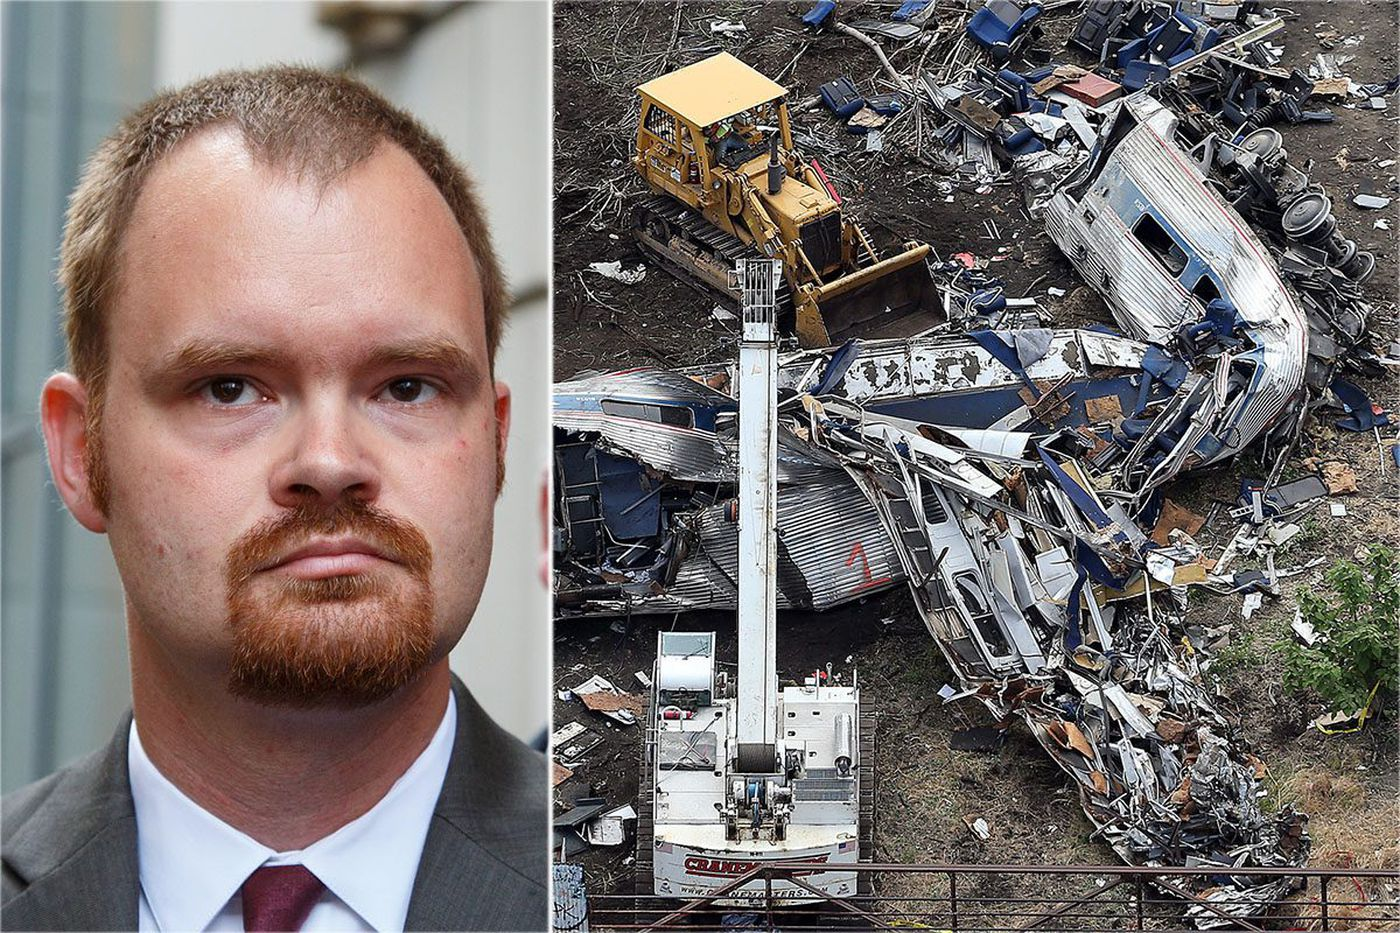 Charges dismissed against Amtrak engineer in 2015 derailment